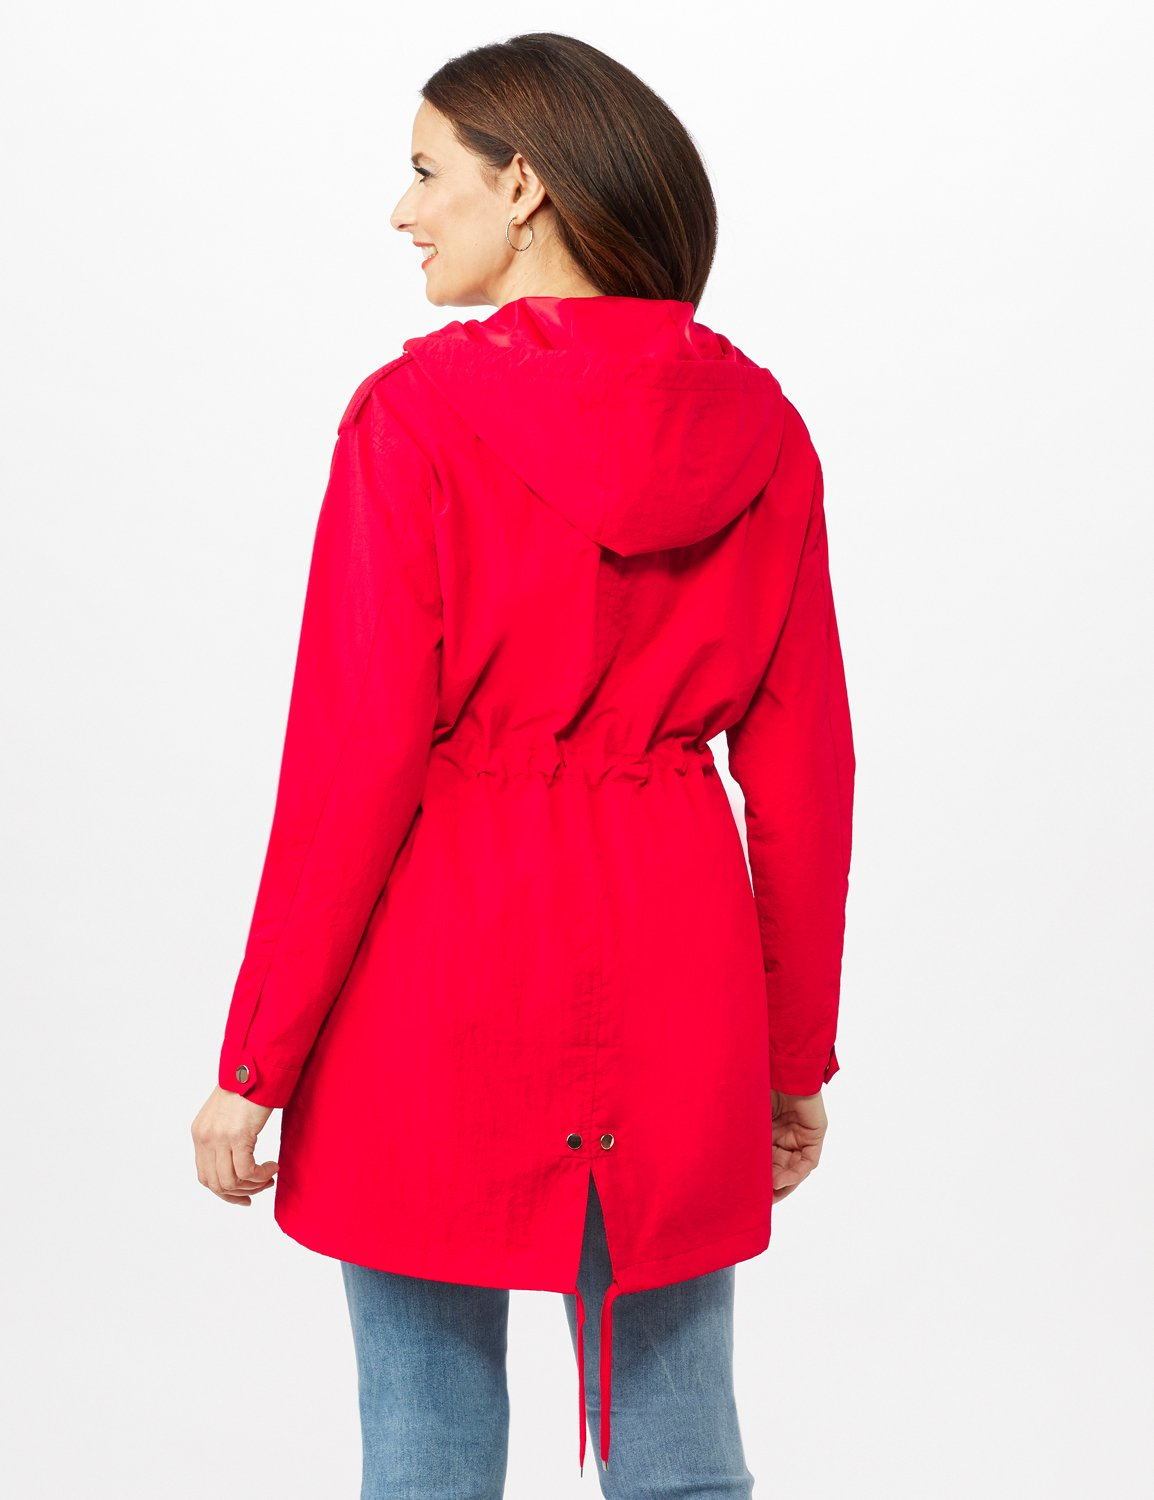 Hooded Zip Front Utility Jacket with Slant, Waist Drawcord, Chest Zip Pockets -R.red - Back